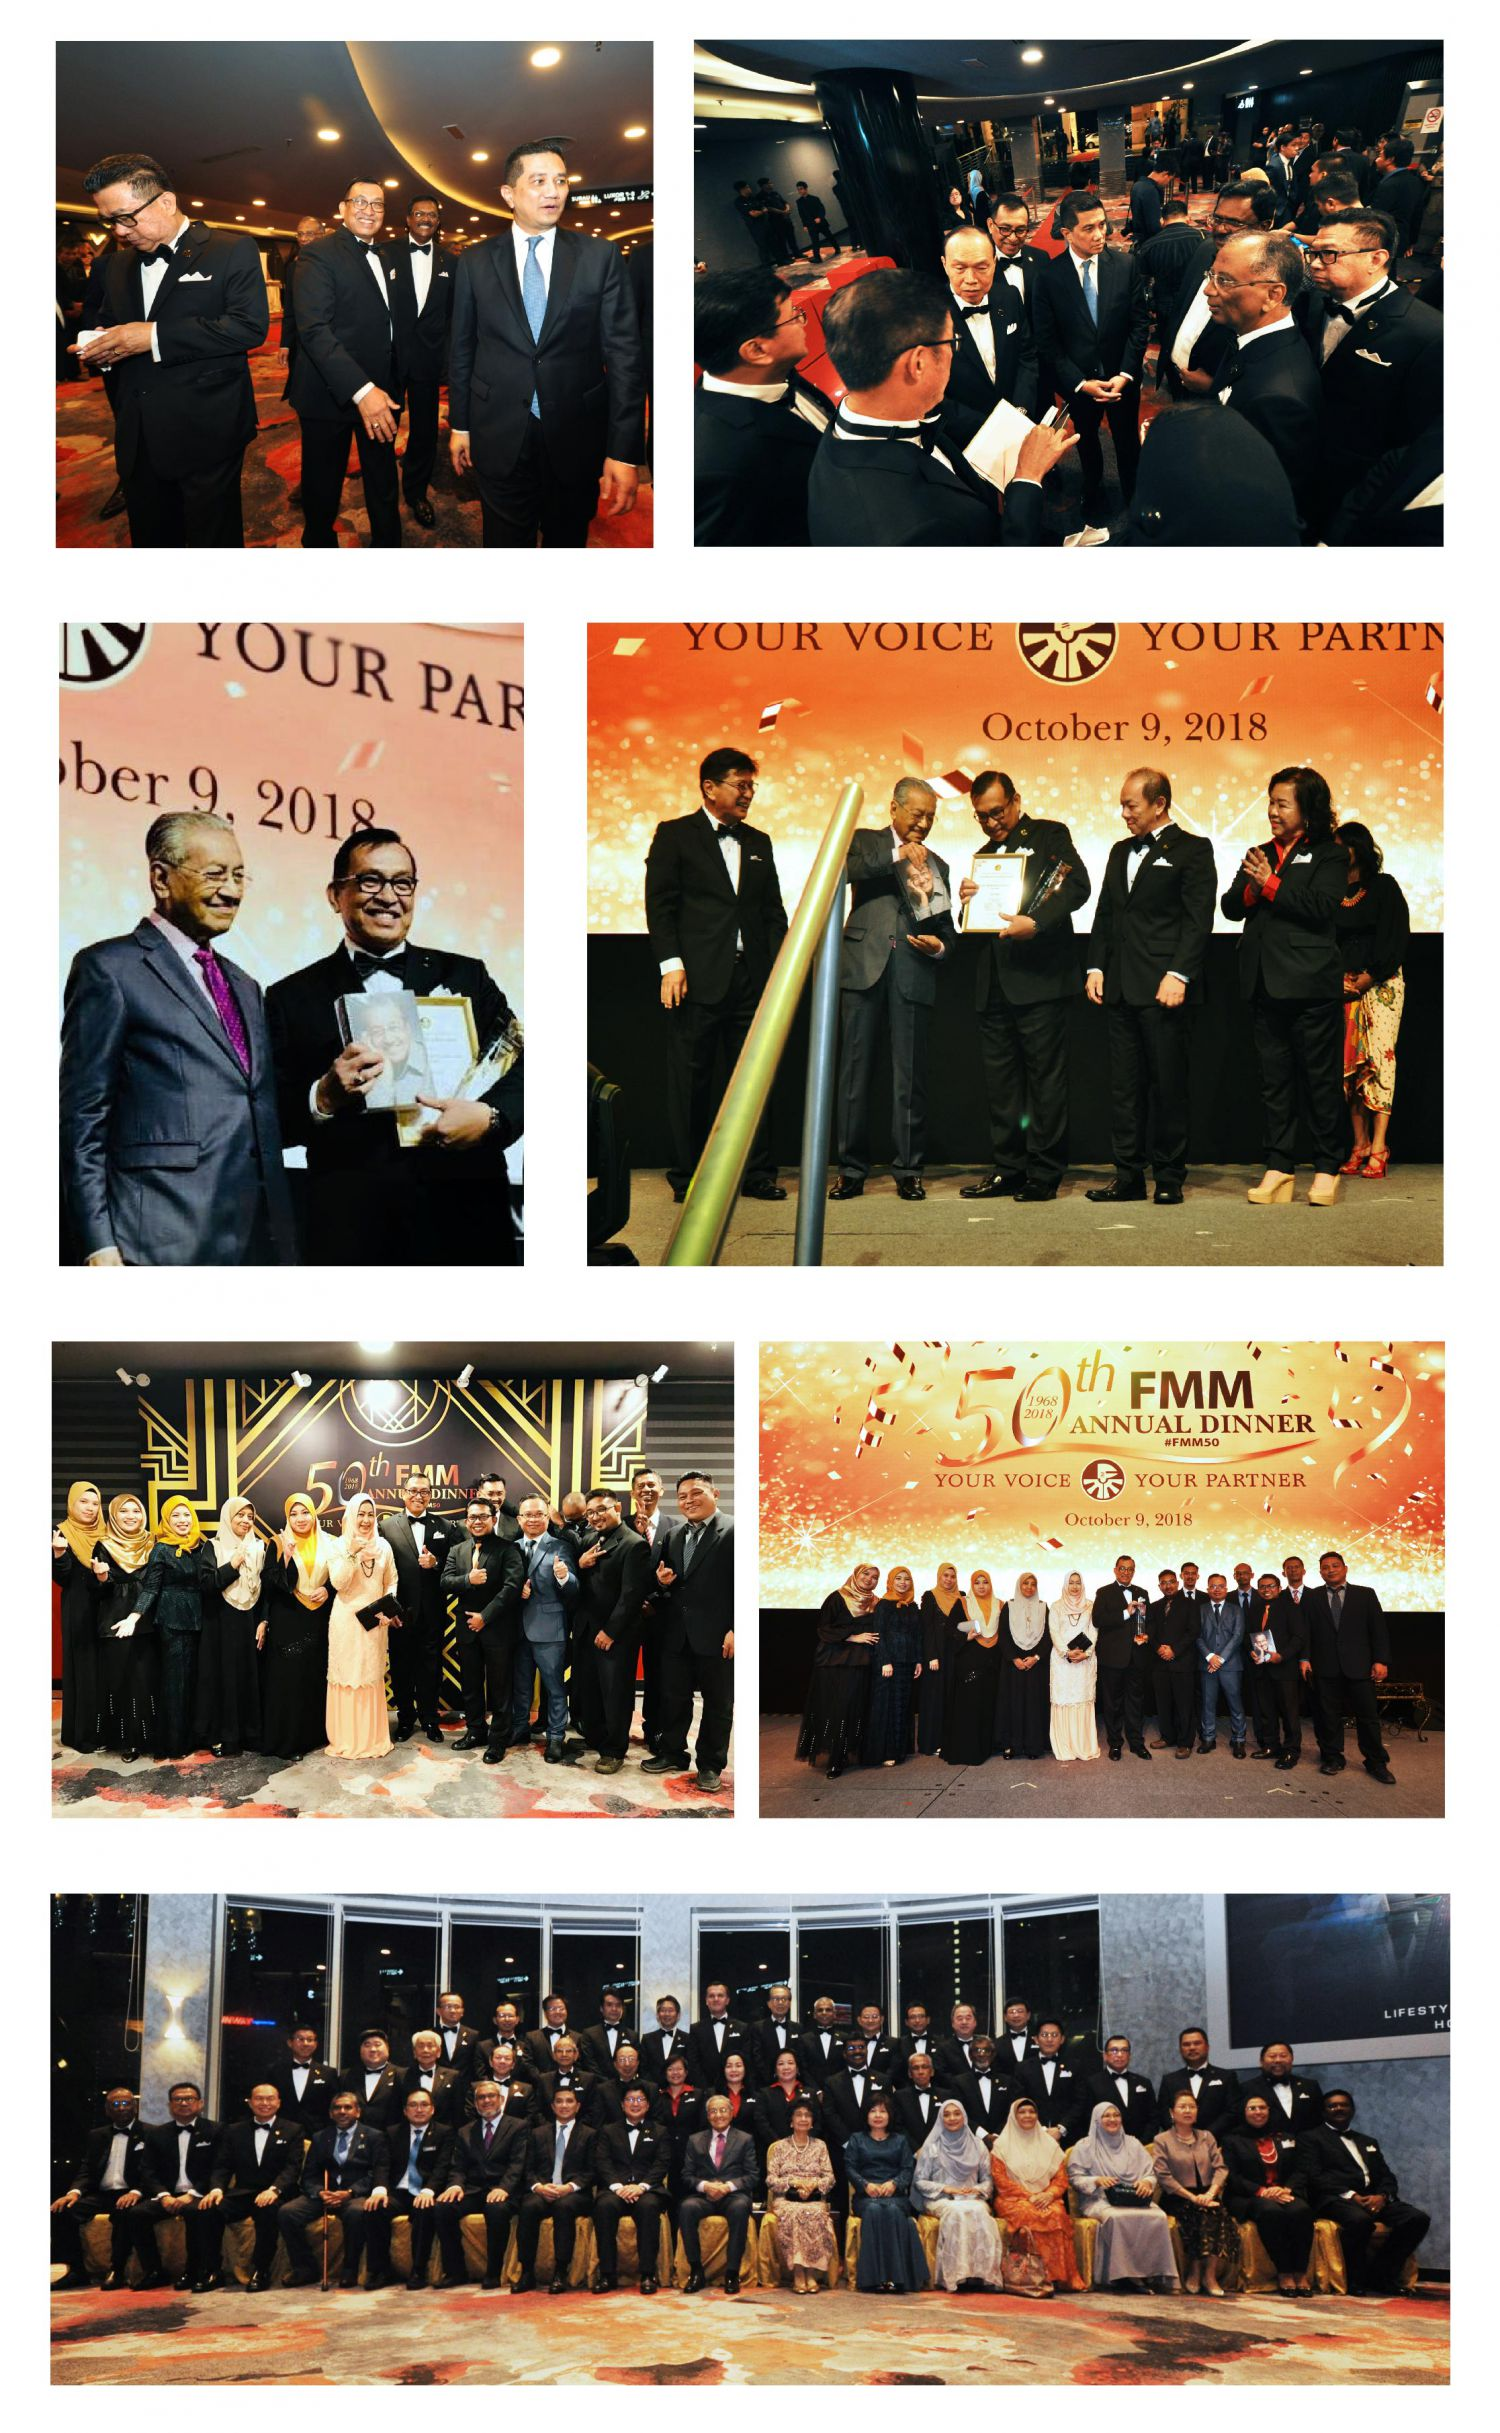 50TH FMM (FEDERATION OF MALAYSIAN MANUFACTURERS) ANNUAL